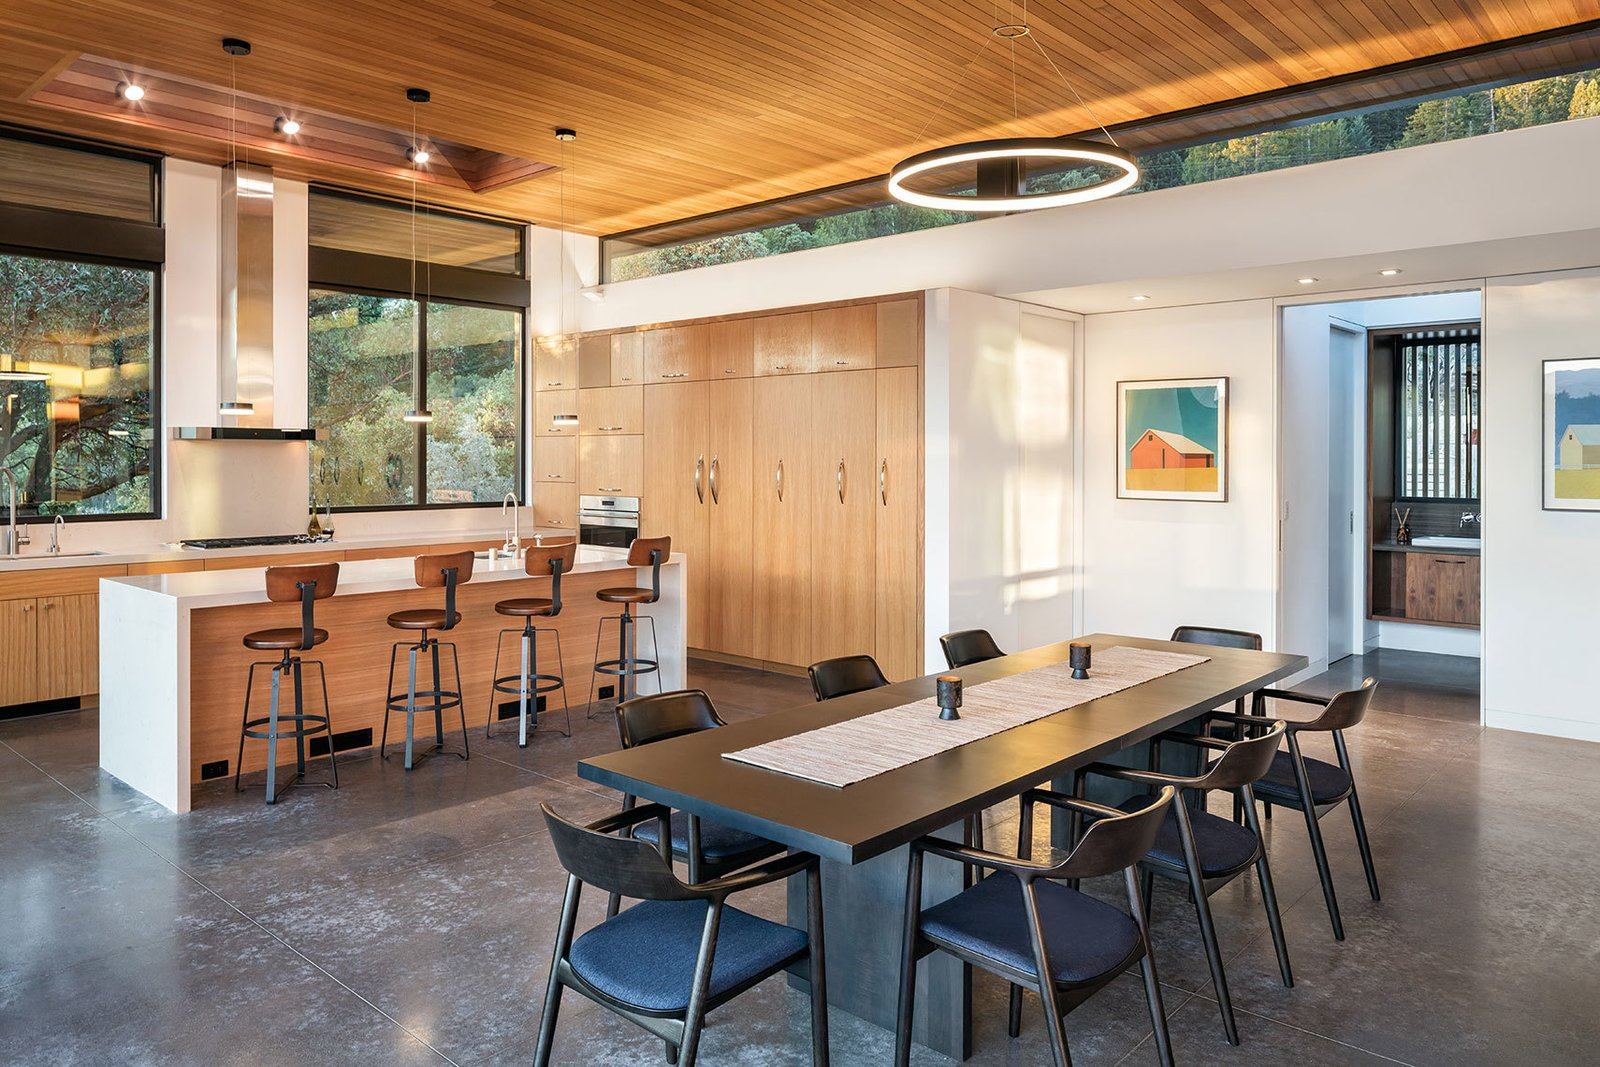 Tagged: Kitchen, Engineered Quartz Counter, Wood Cabinet, Concrete Floor, Ceiling Lighting, Recessed Lighting, Refrigerator, Wall Oven, Range, Undermount Sink, Range Hood, and Dishwasher.  Dry Creek by John Maniscalco Architecture